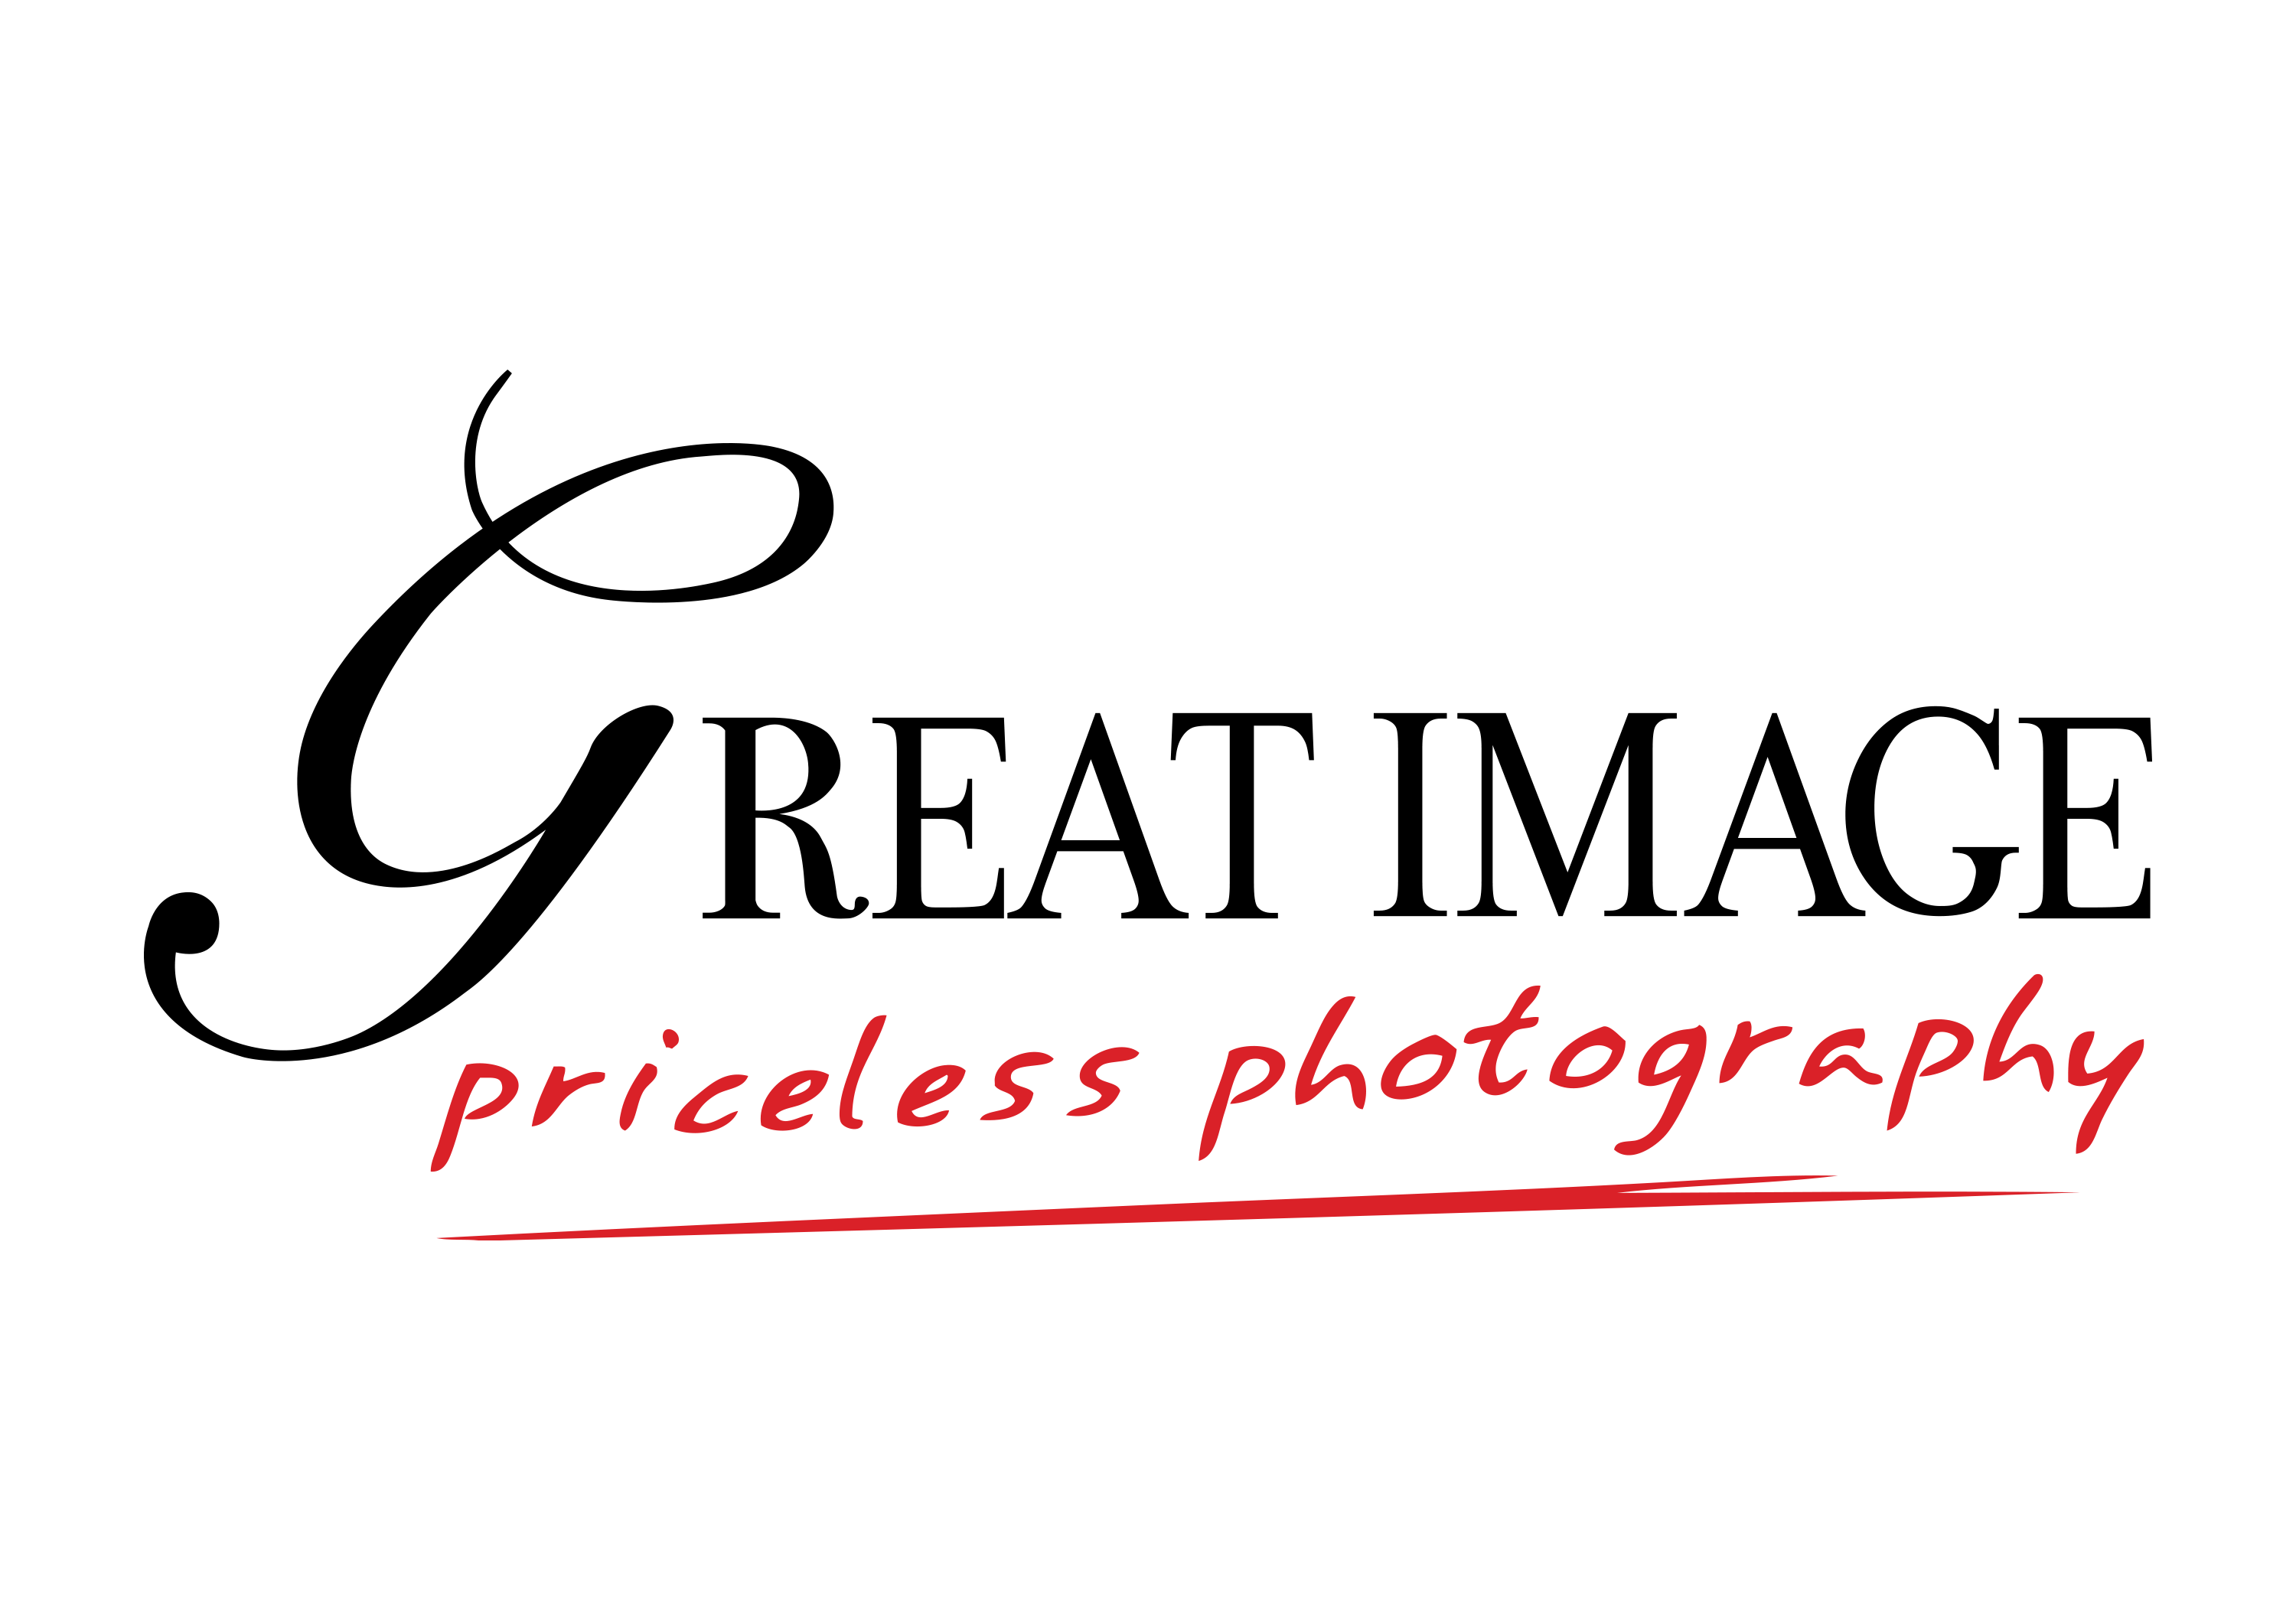 GREAT IMAGE SERVICES CORP.